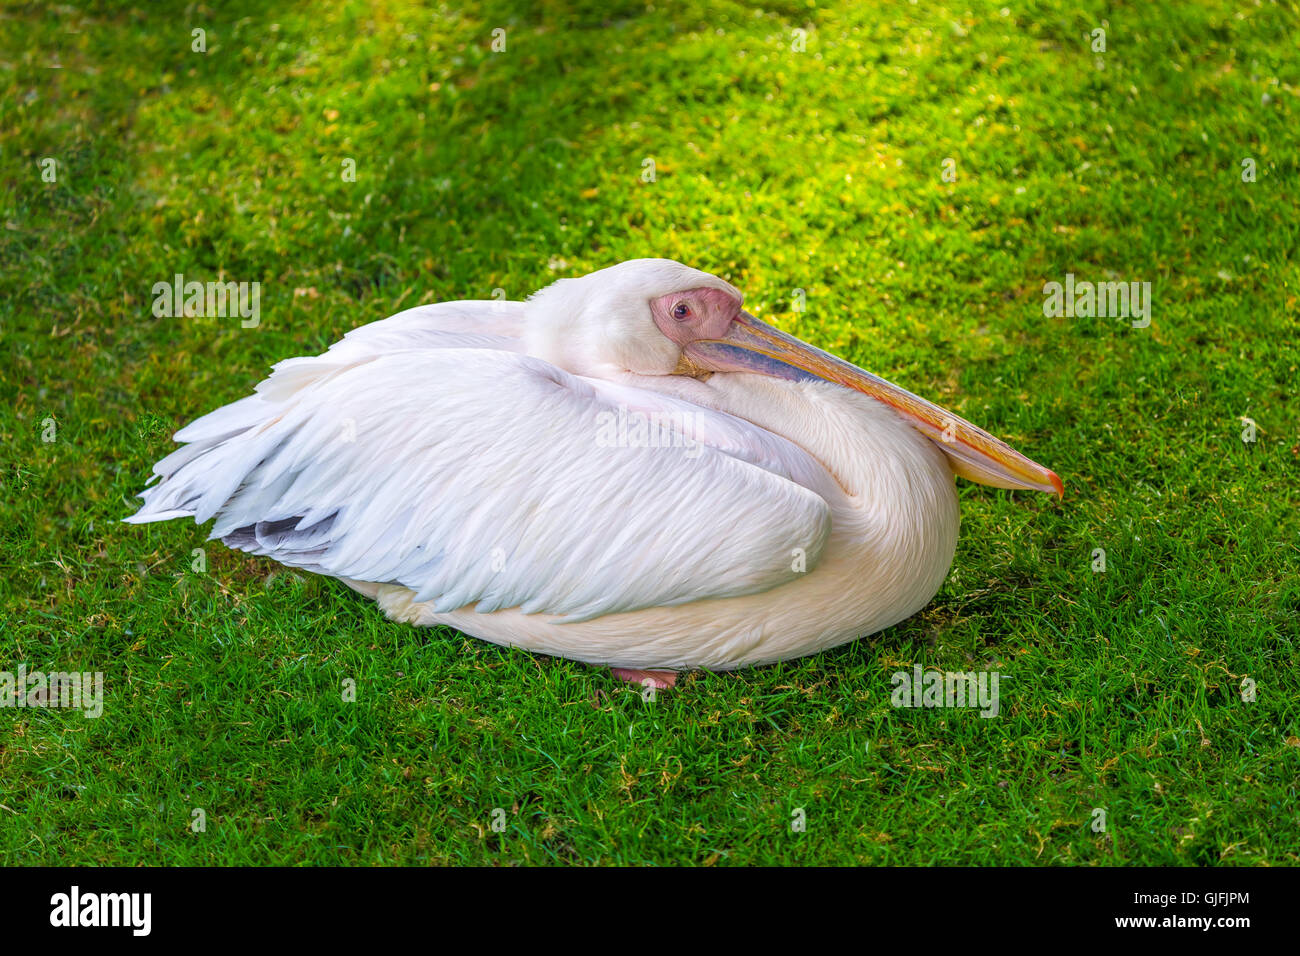 Friendly colorful pelican picture - Stock Image